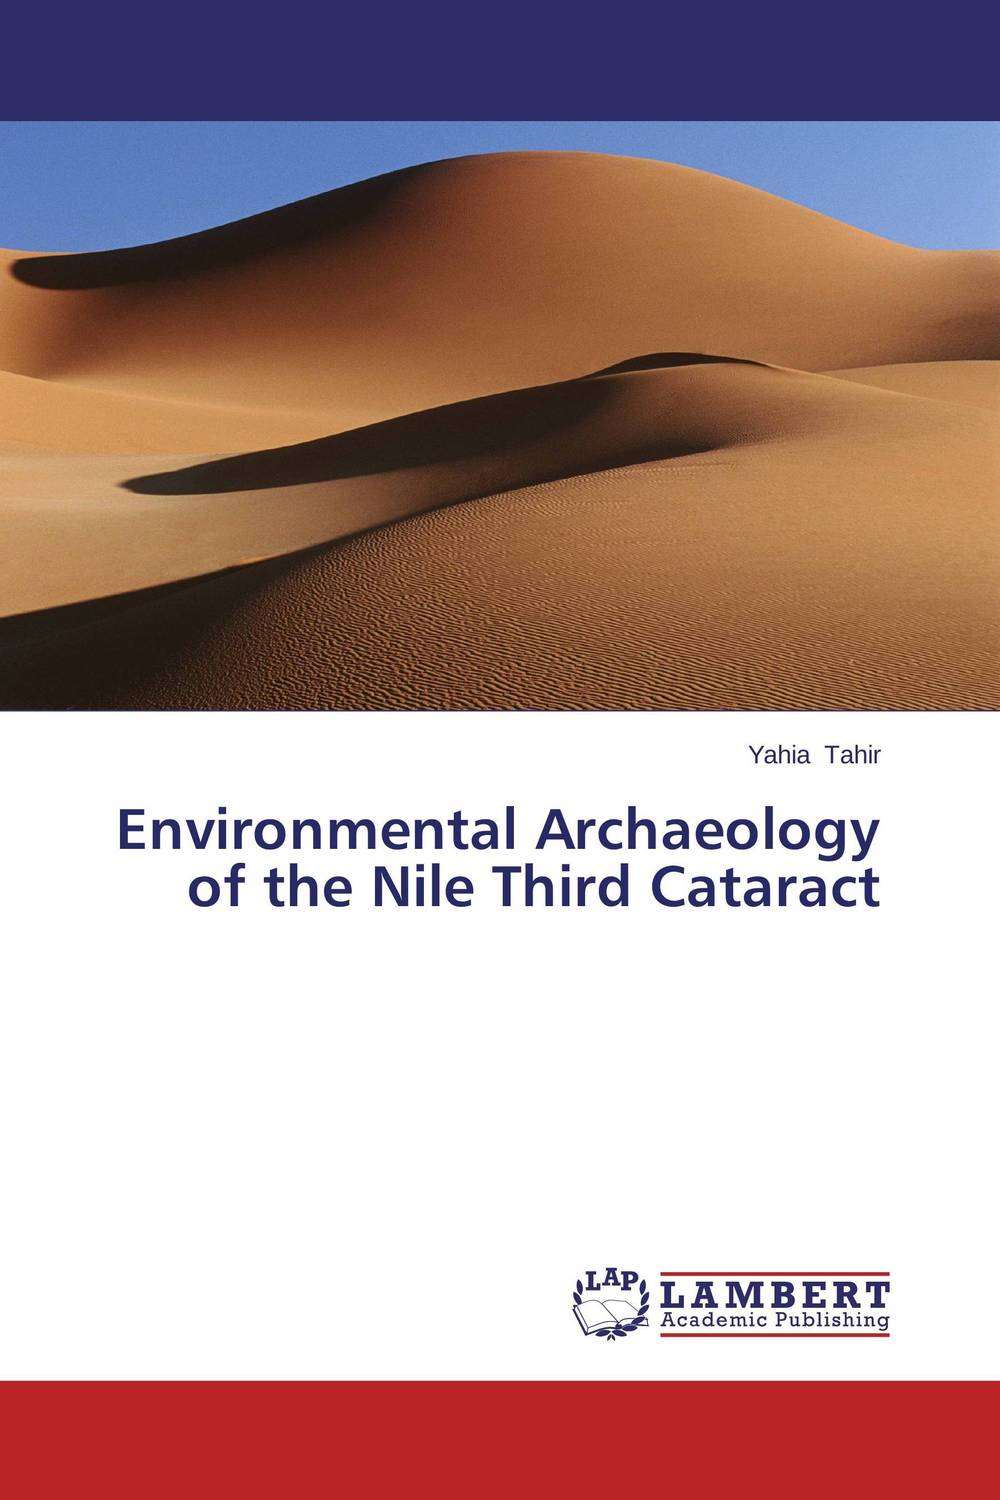 Environmental Archaeology of the Nile Third Cataract yahia tahir environmental archaeology of the nile third cataract